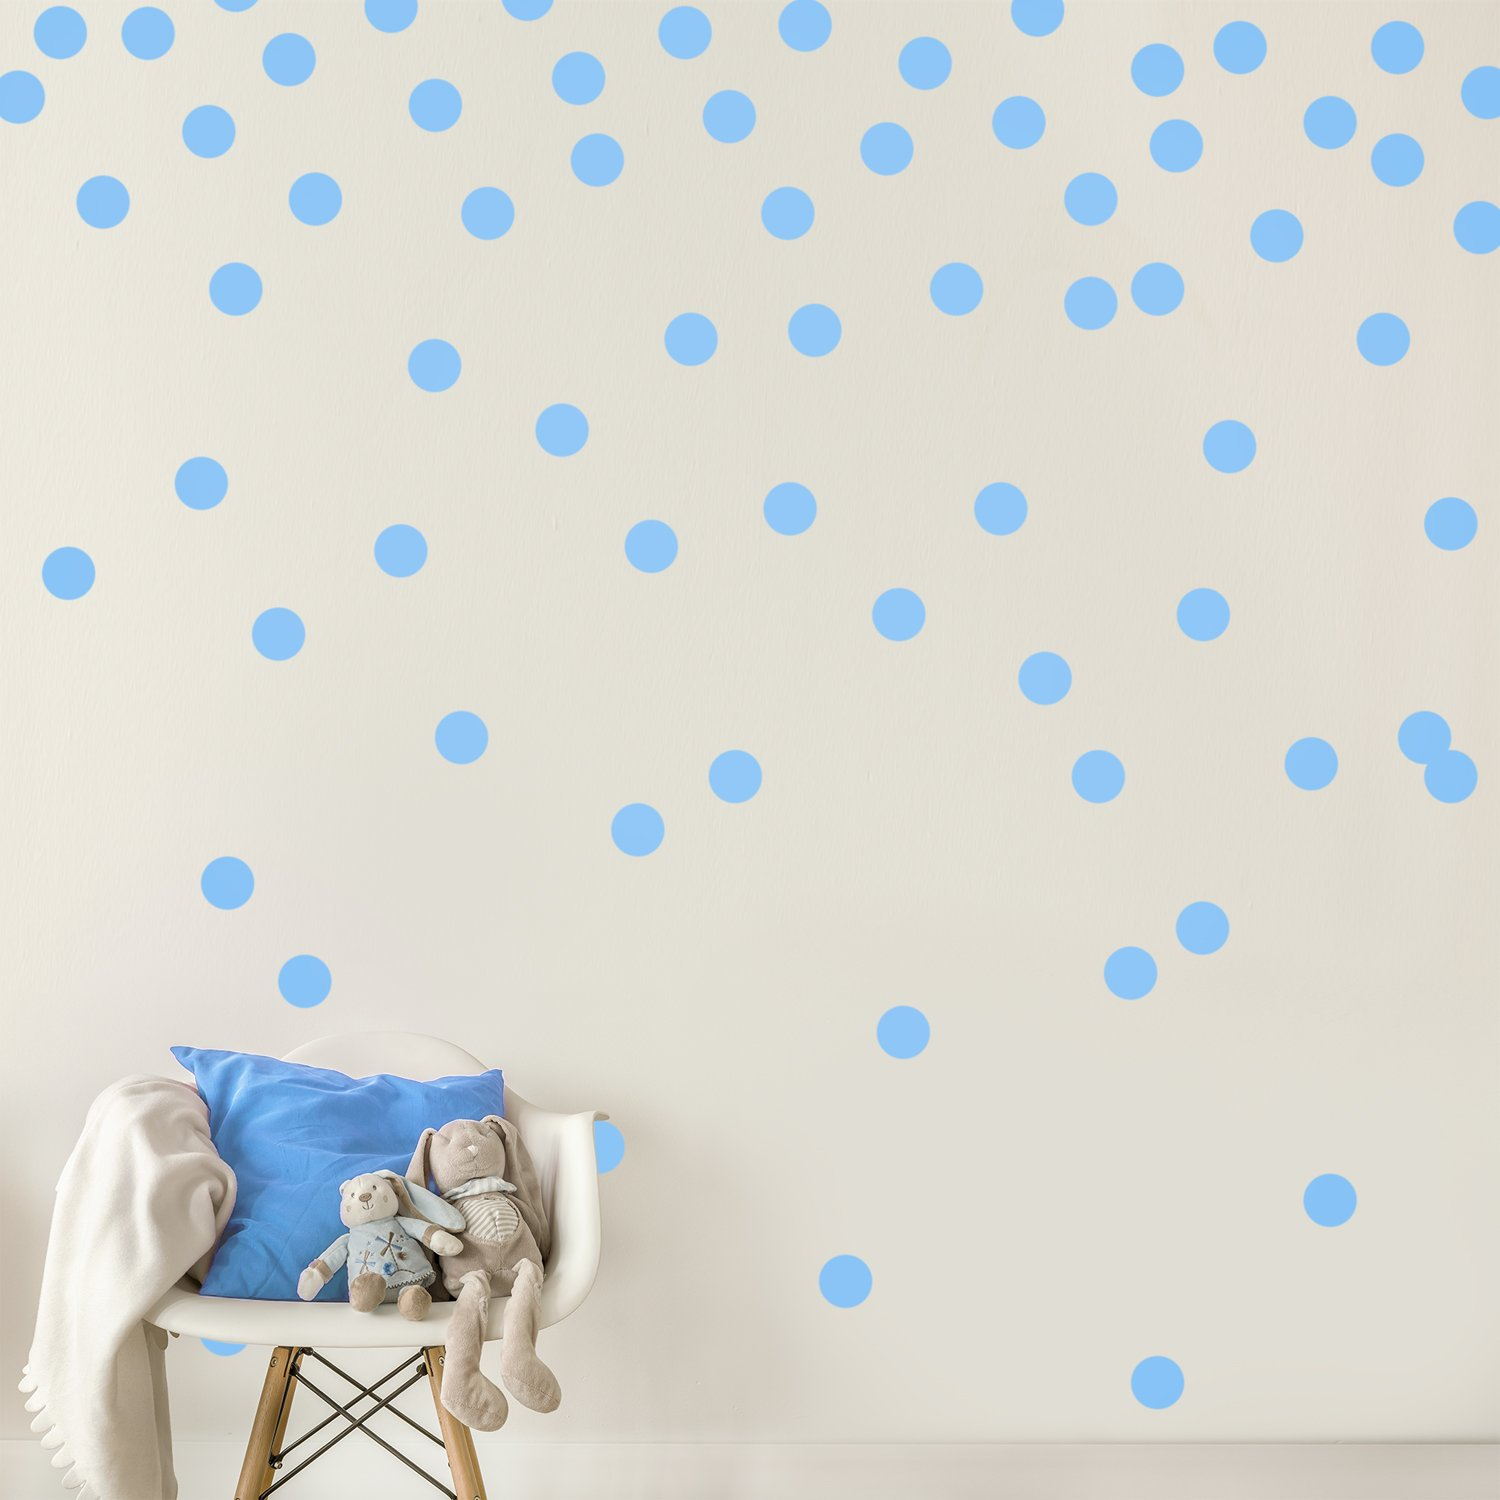 Baby Safe Wall Mirrors 2 Silver Wall Decal Dots (200 Decals) | Easy Peel u0026 Stick + Safe on Walls  Paint | Removable Metallic Vinyl Polka Dot Decor | Round Circle Art Glitter  Sayings ...